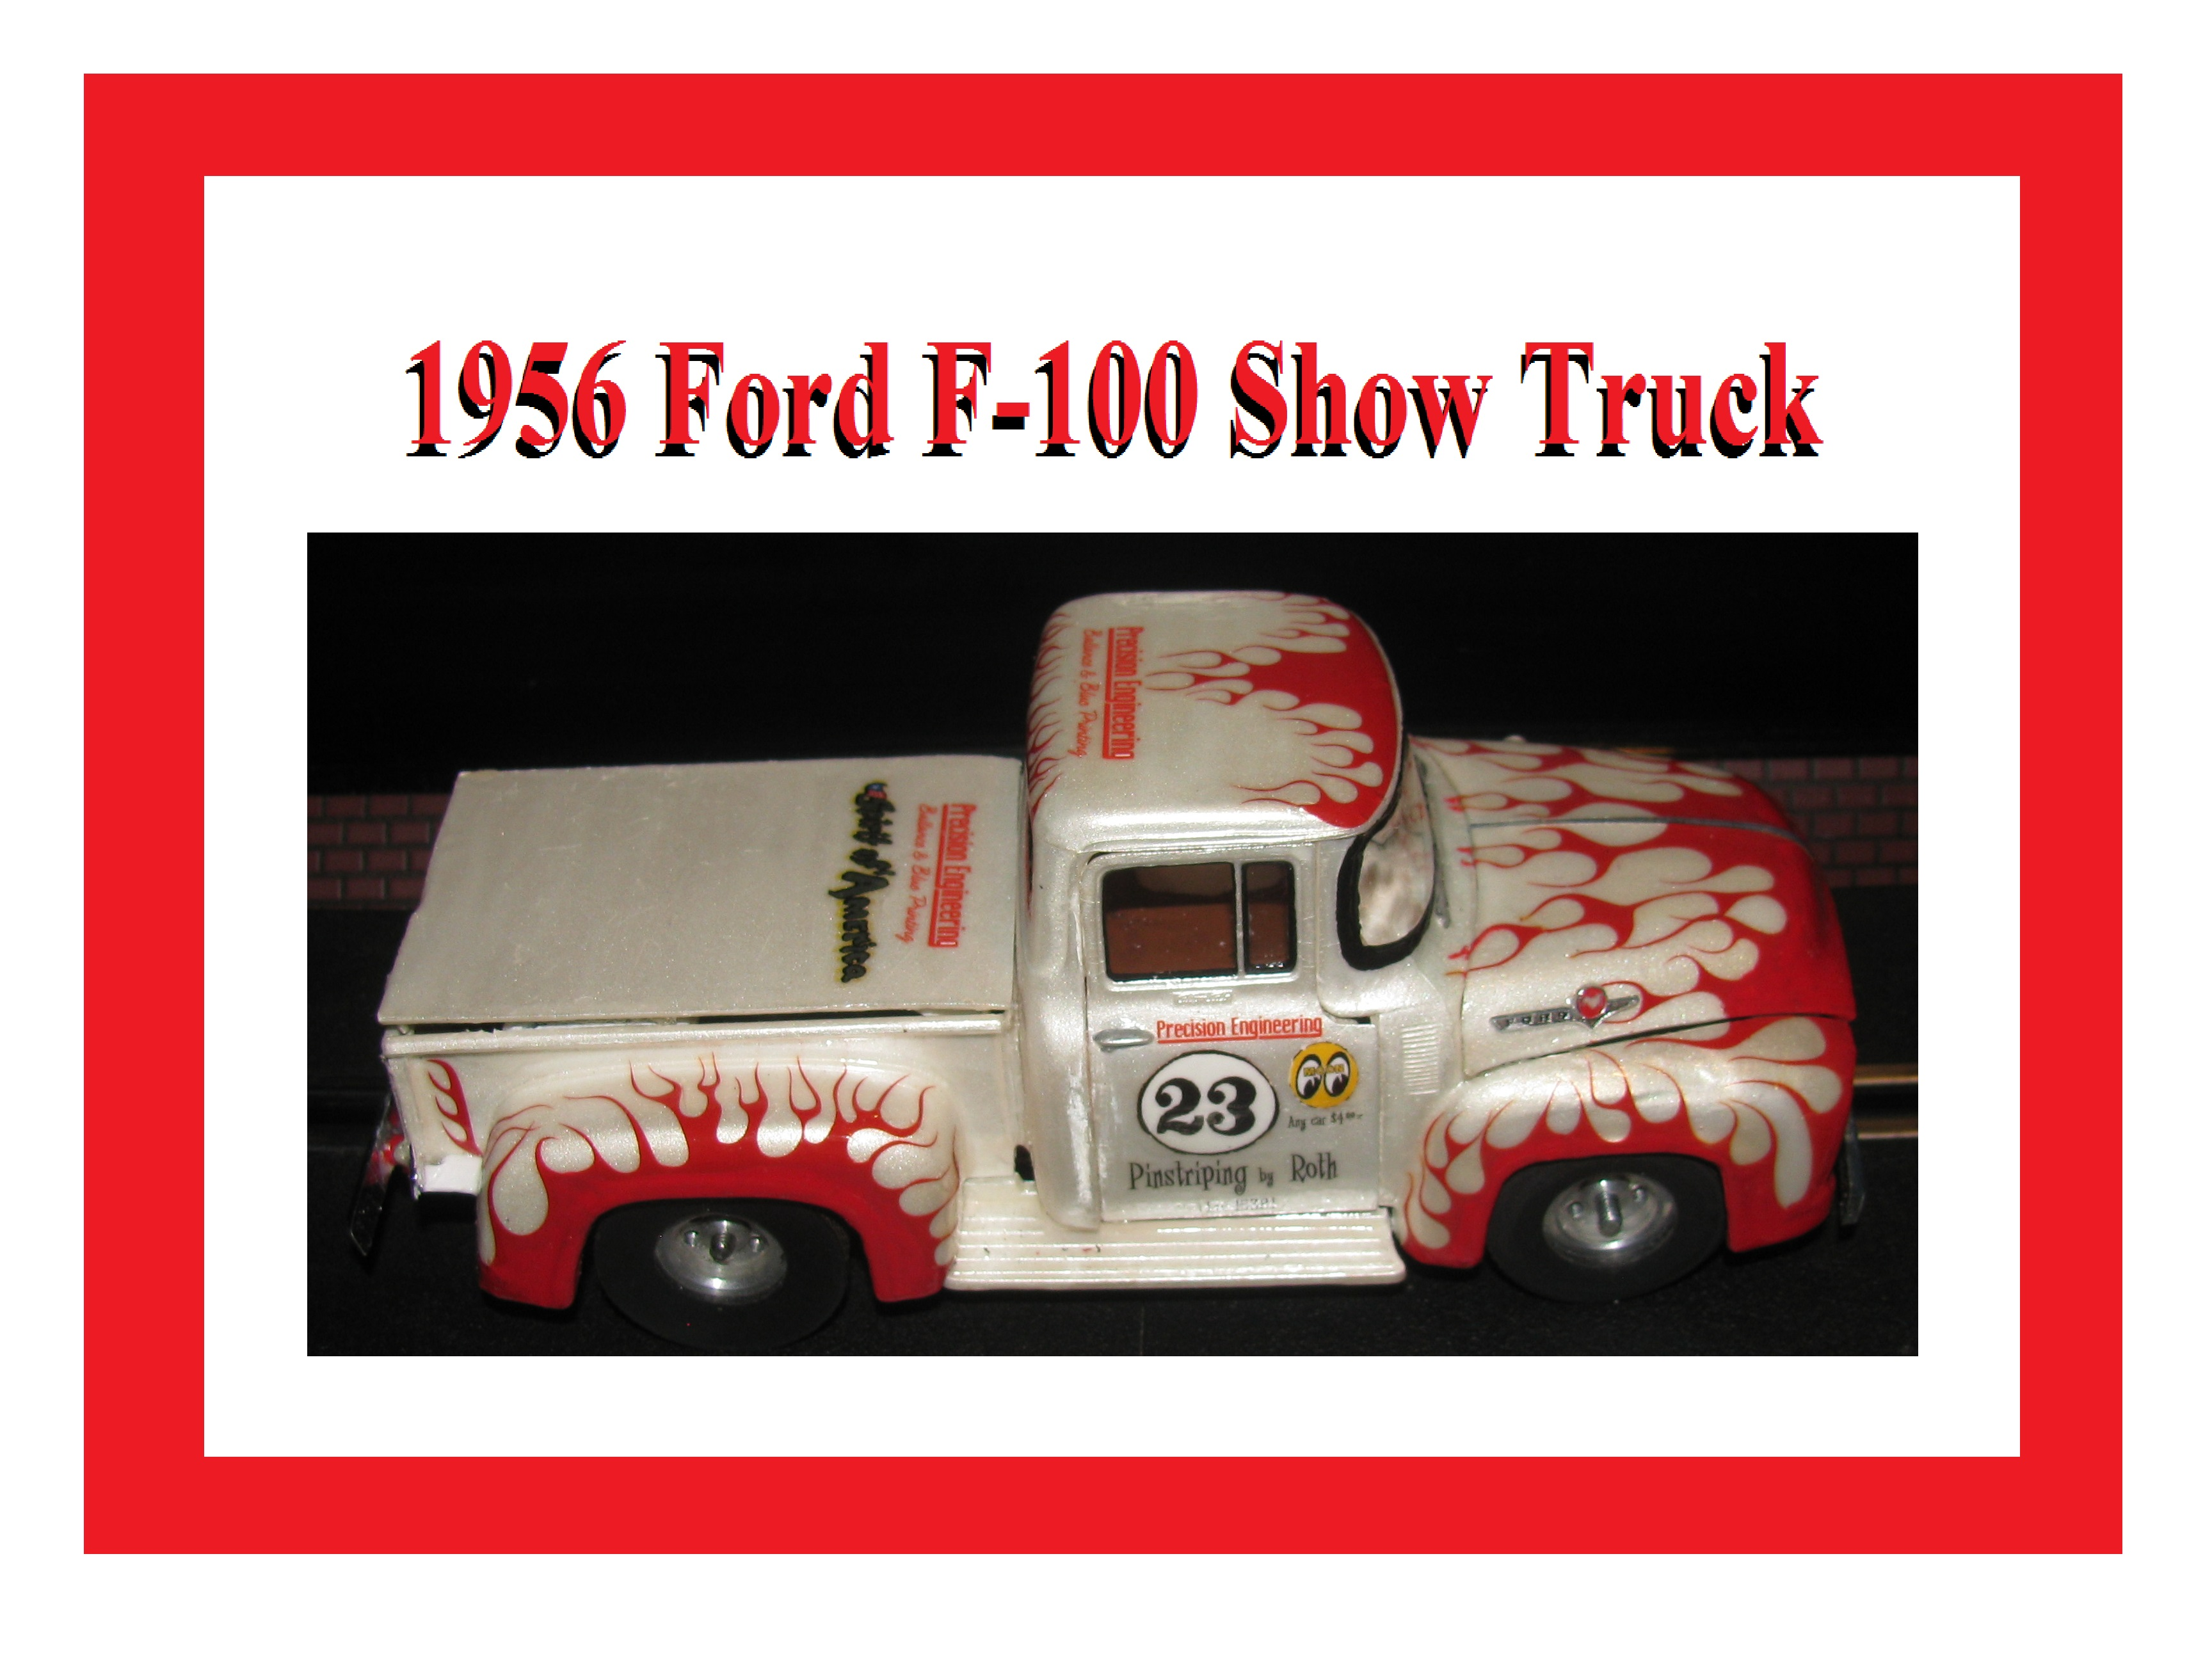 * Winter is coming SALE * Revell 1956 Ford F-100 Show Truck in Pearl White with Unique Livery - #23 – 1:24 Scale